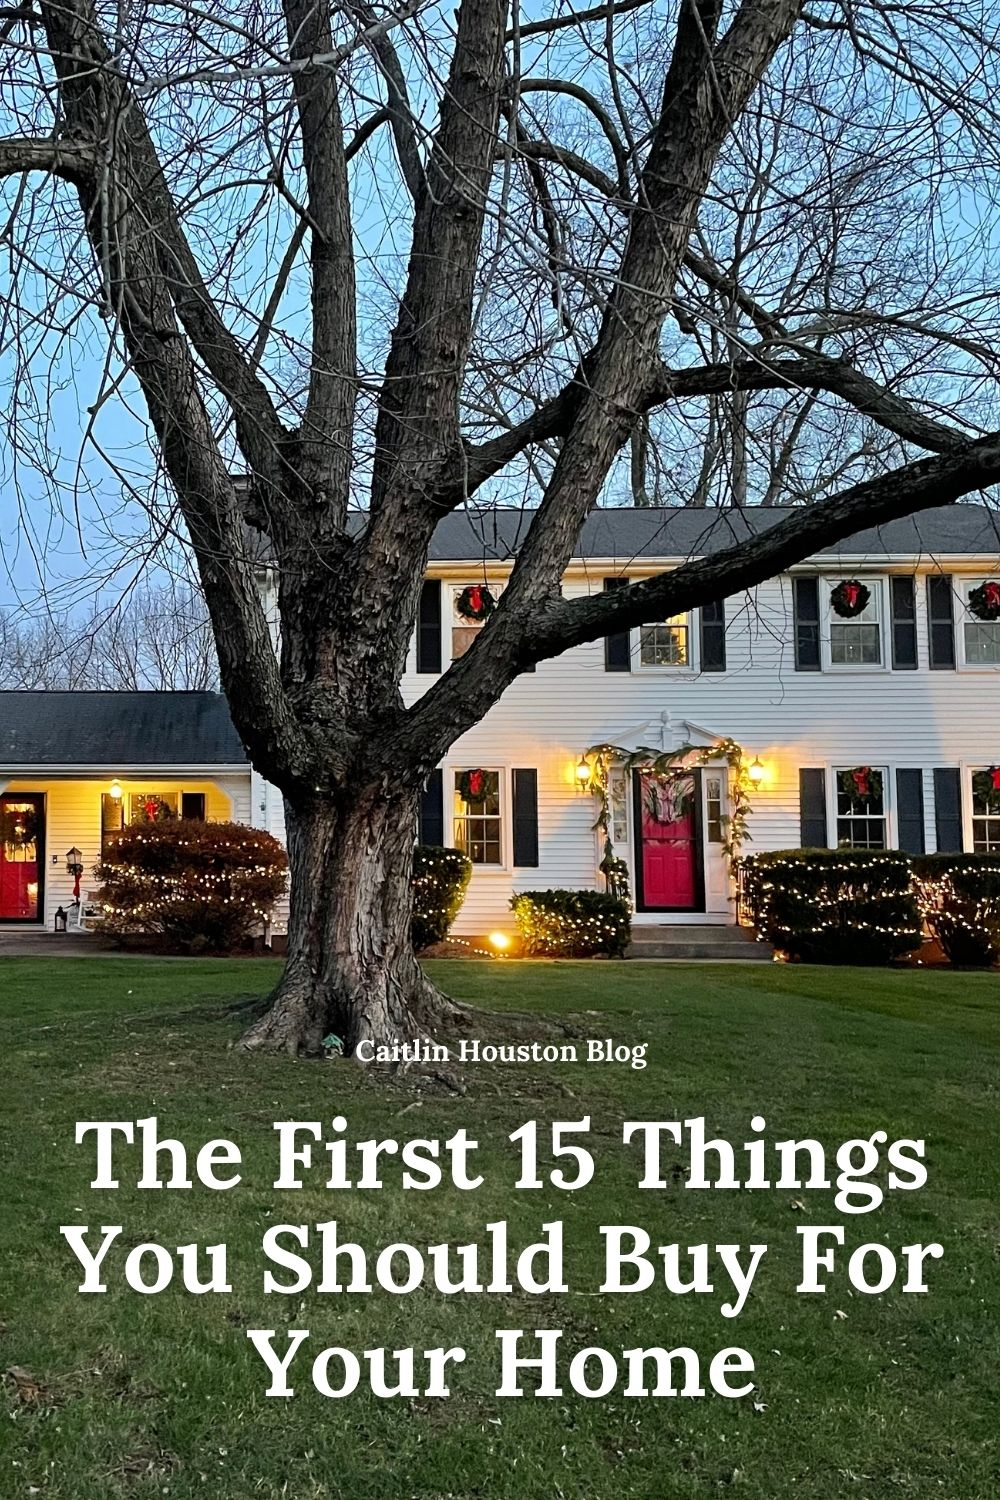 The First 15 Things You Should Buy For Your Home